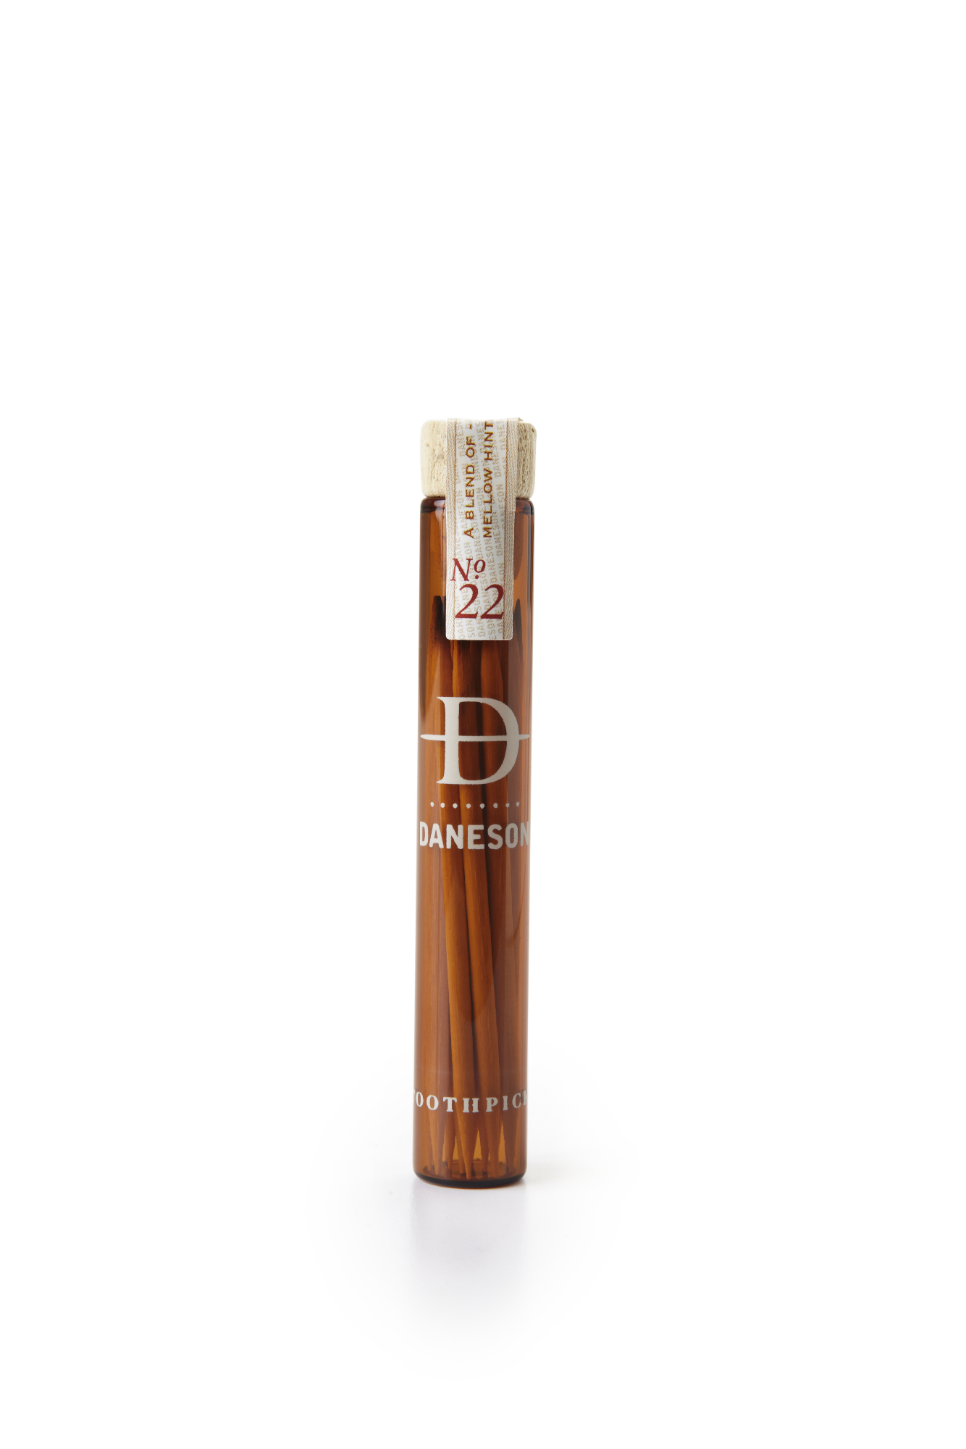 Daneson - Toothpicks - Bourbon No. 22